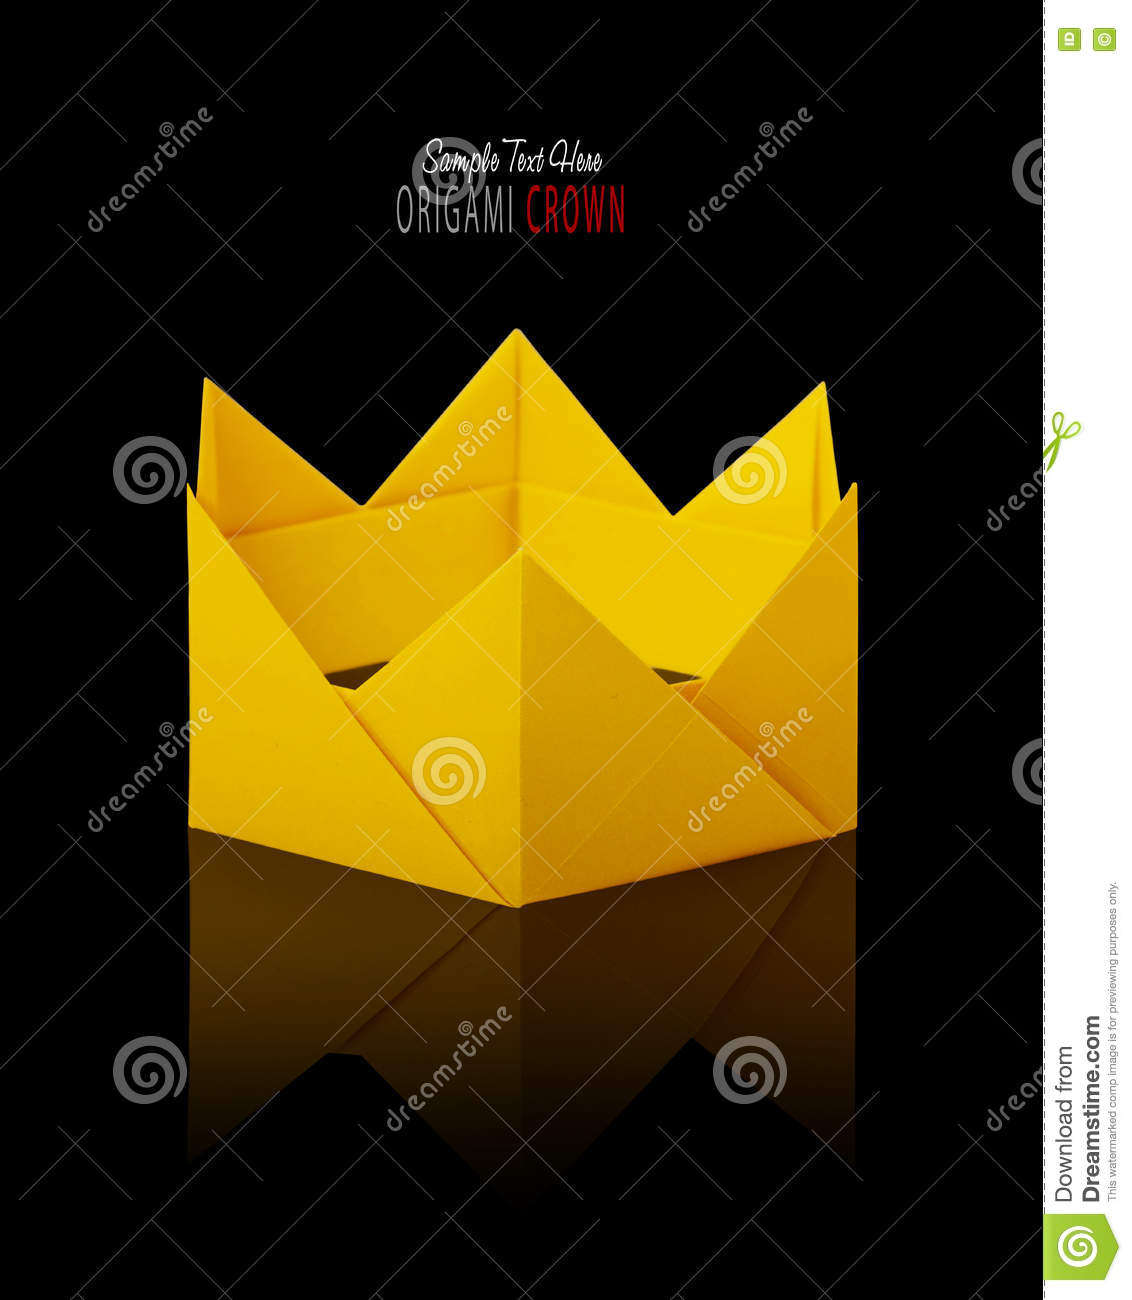 Origami Paper Crown Stock Photo Image Of Medieval Prince 79169110